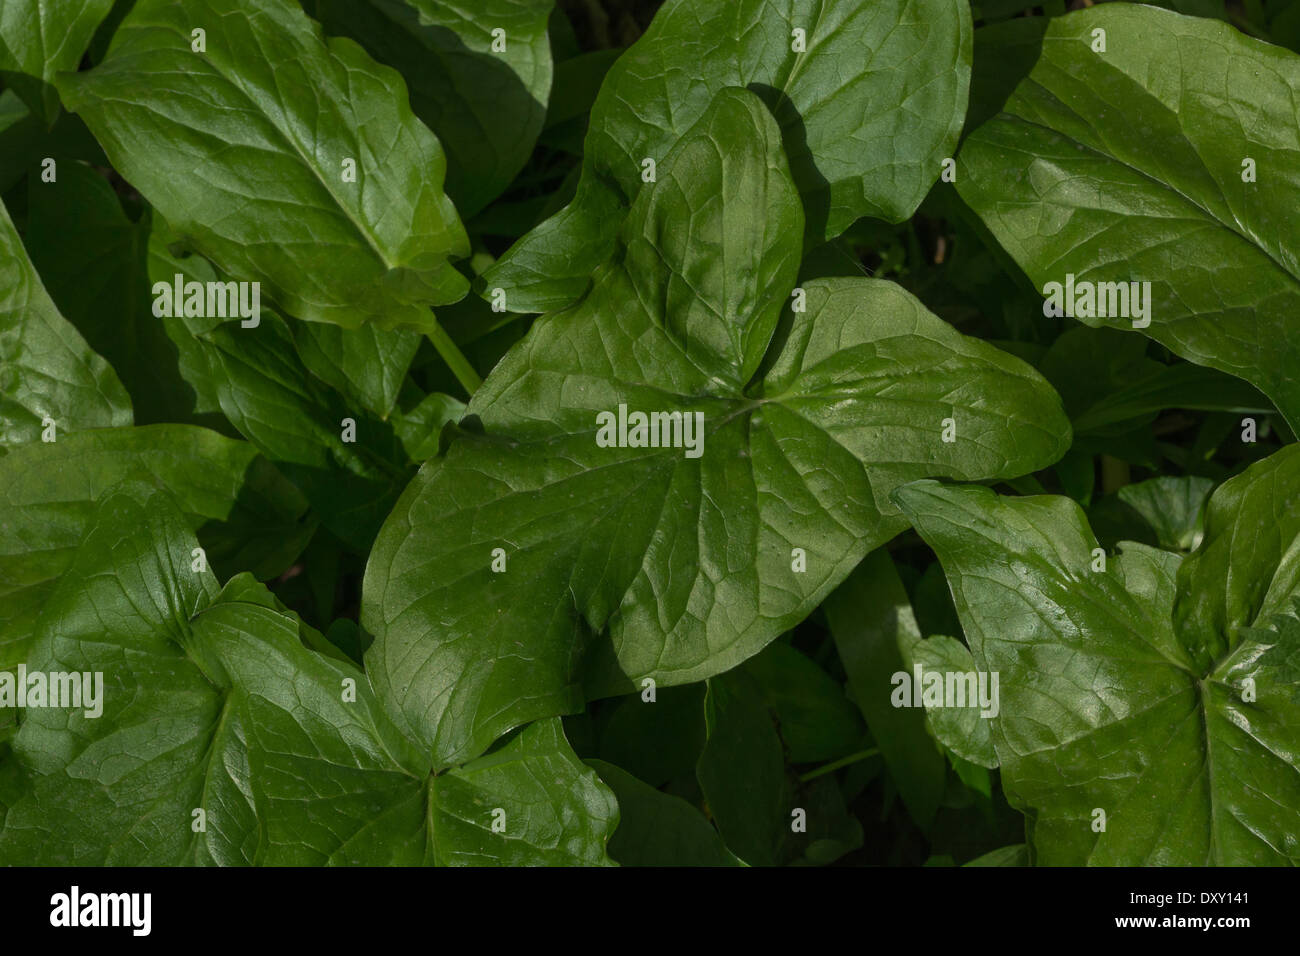 Leaf of Arum maculatum / Cuckoo-pint / Lords-and-Ladies - a toxic plant. Called Cuckoo-pint, Lords and Ladies, Wake Robin. - Stock Image